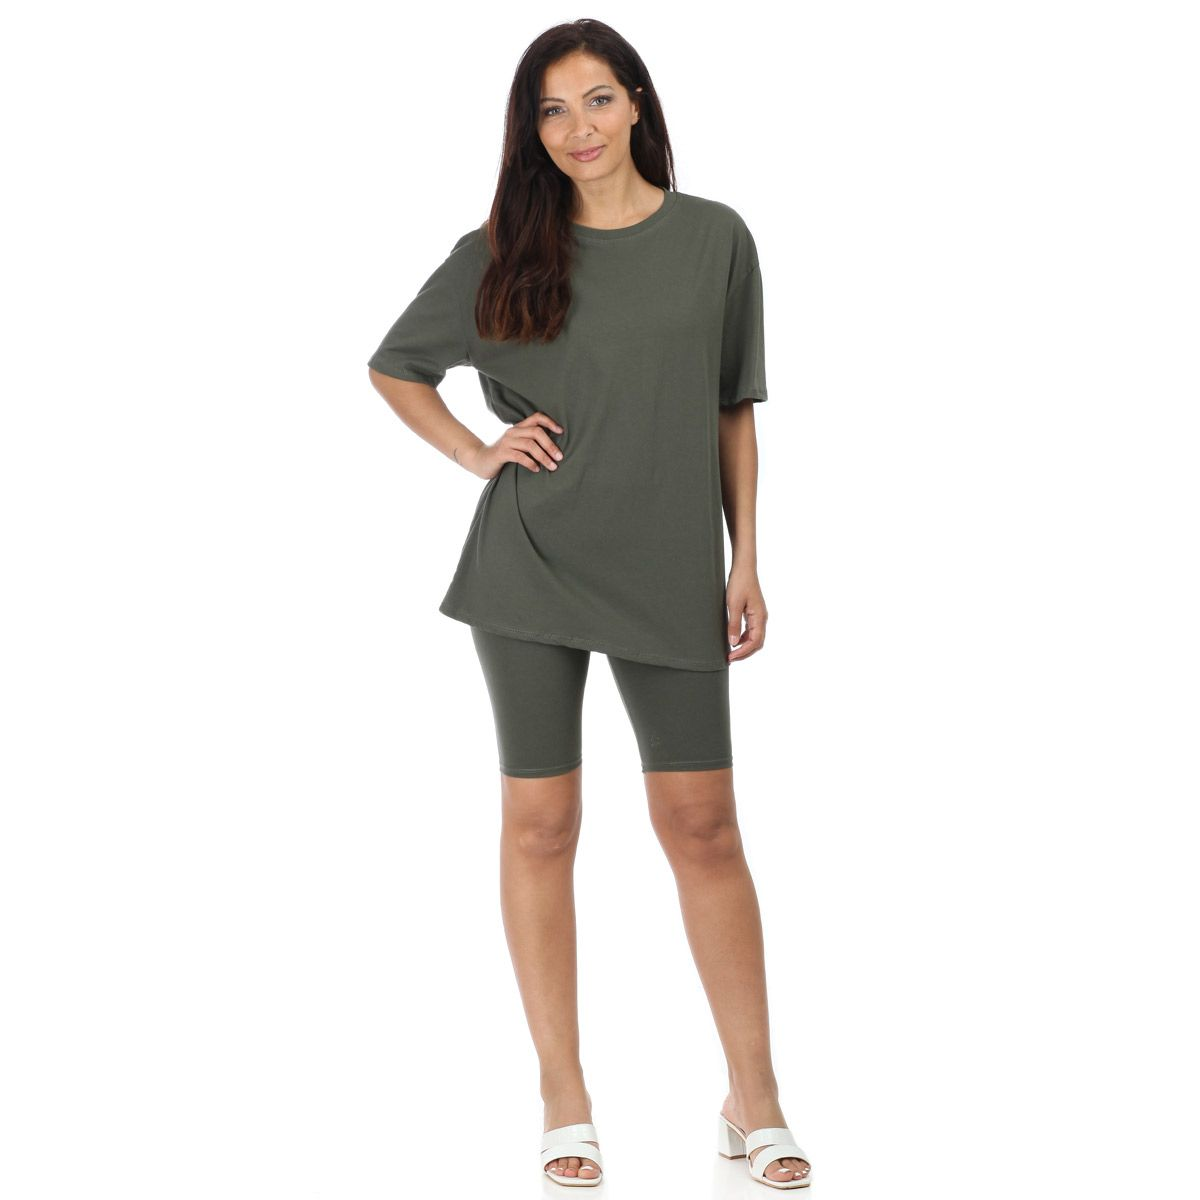 Ensemble kaki t-shirt oversize et short cycliste